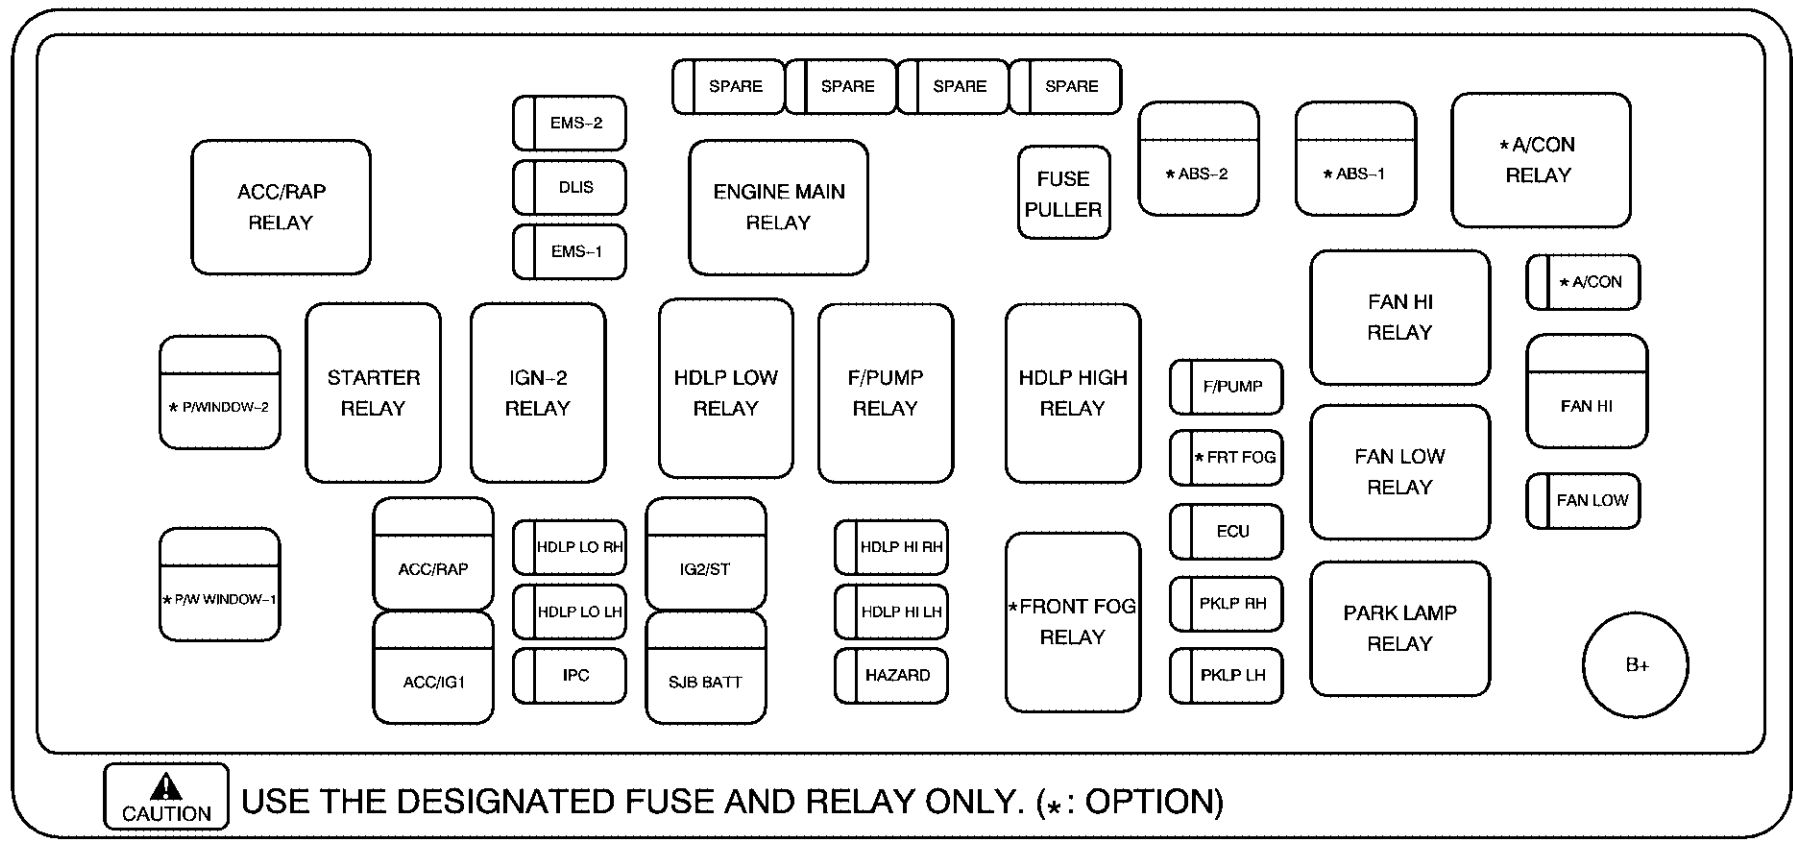 hight resolution of chevy optra fuse box schema wiring diagram online infiniti fuse box 2009 chevy aveo fuse box